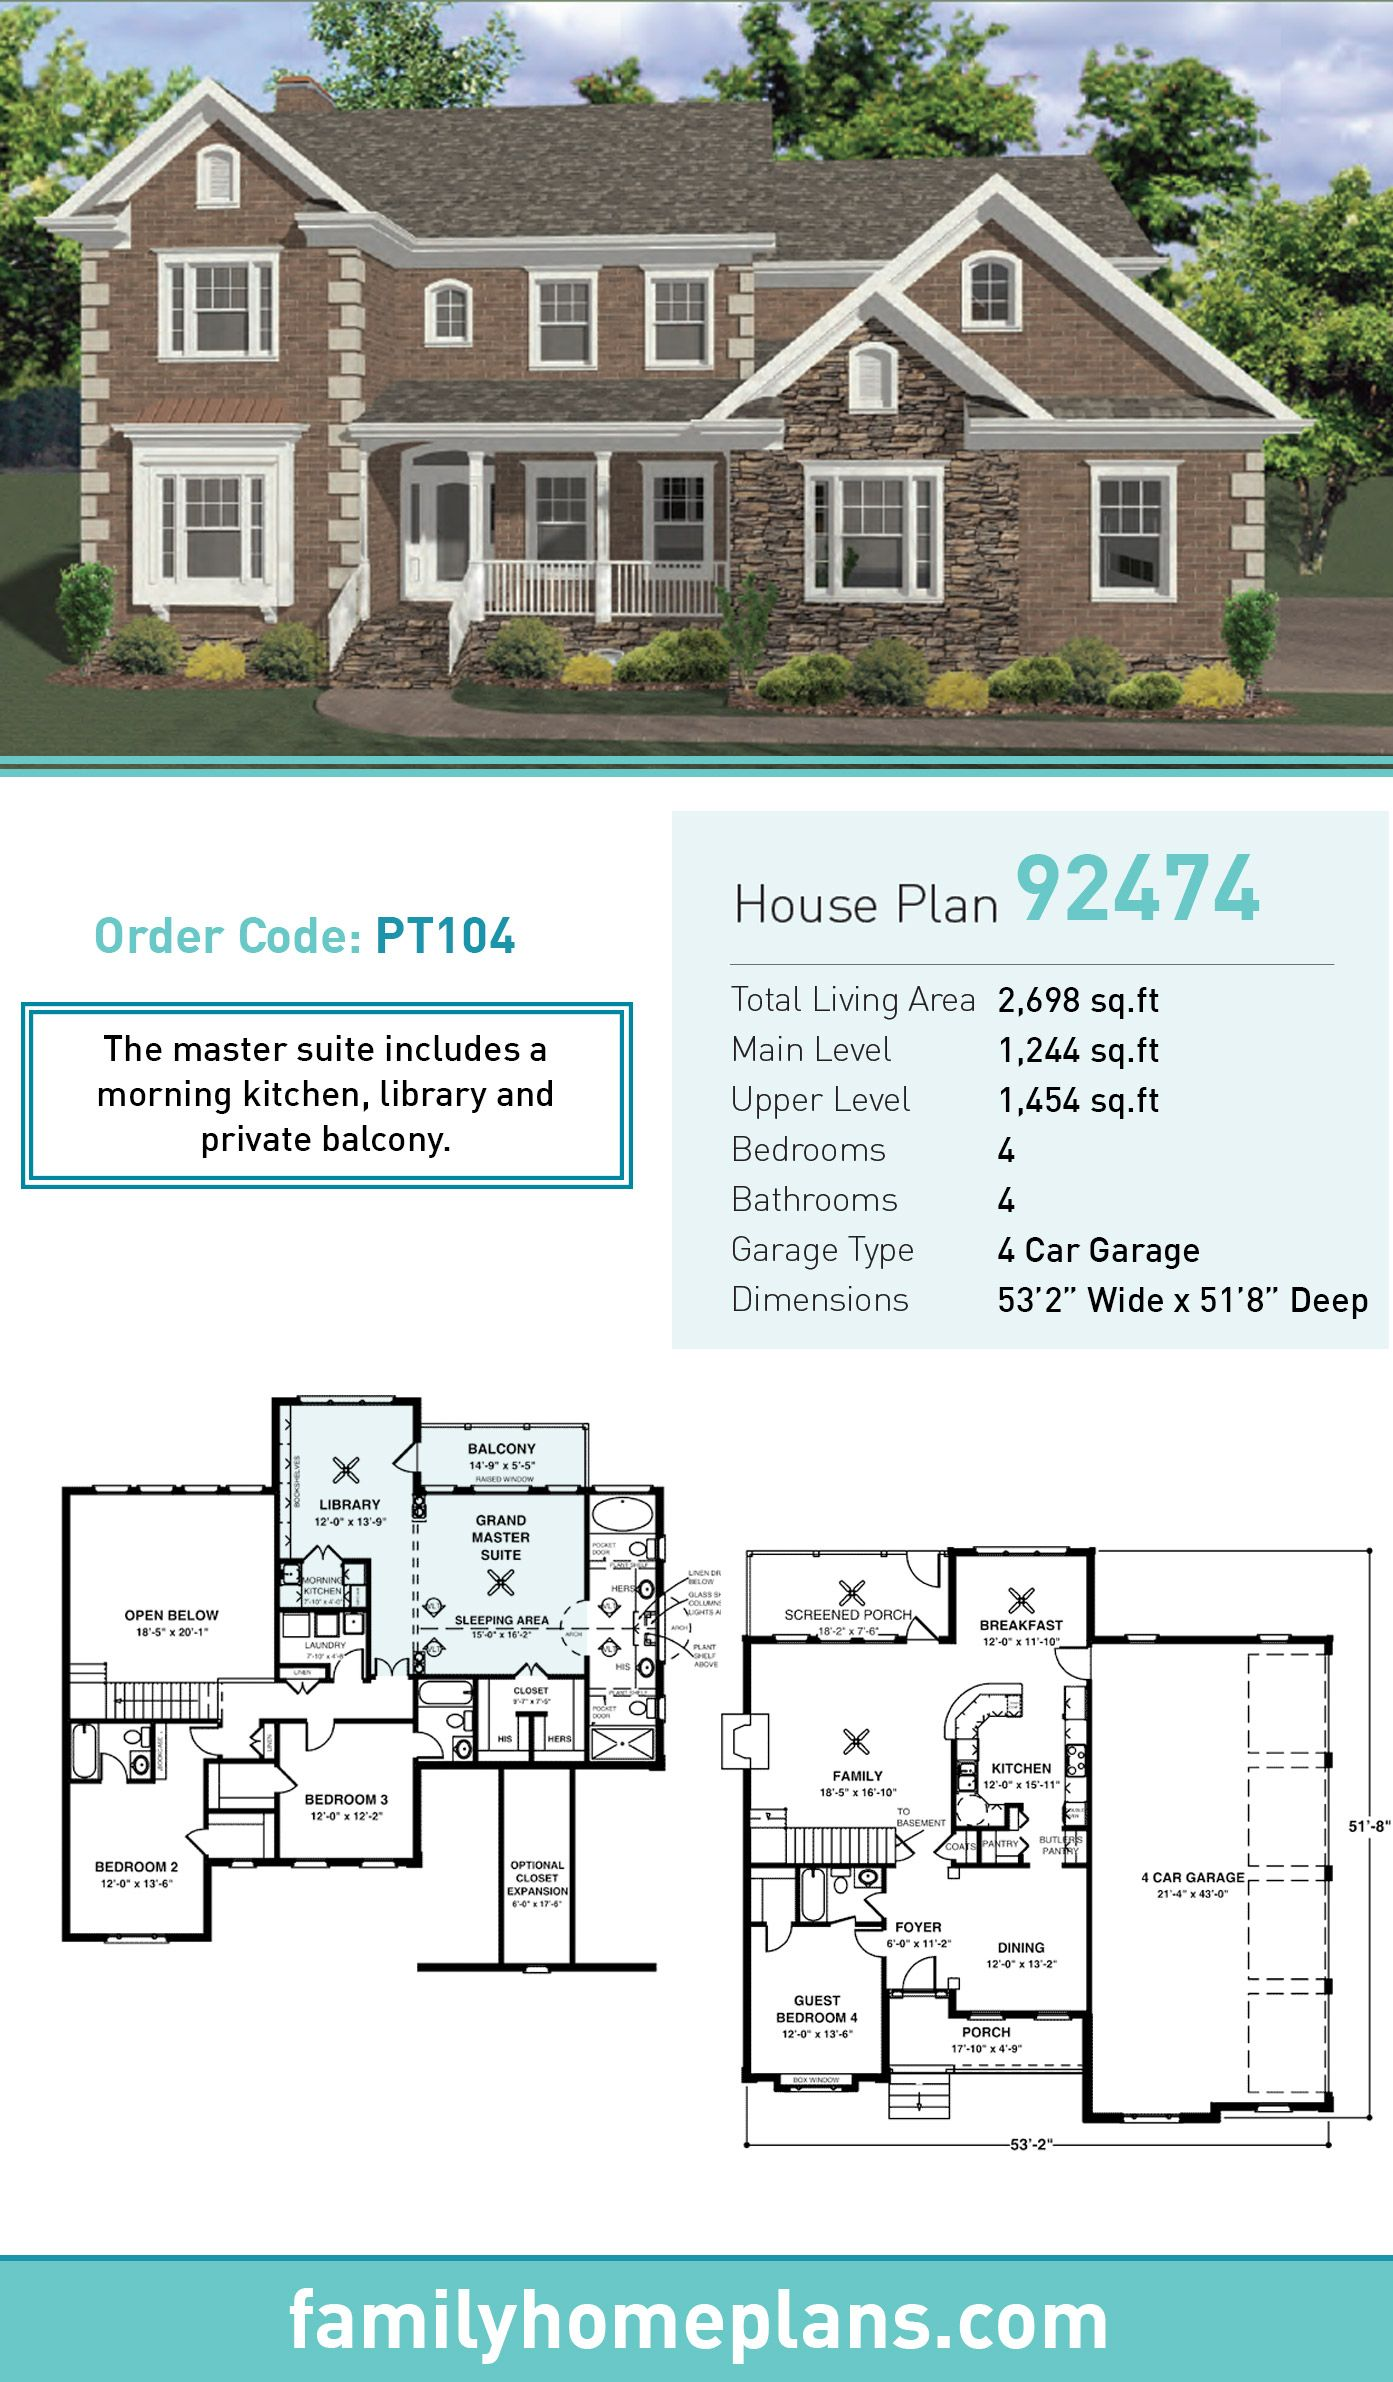 Tudor Style House Plan 92474 With 4 Bed 4 Bath 4 Car Garage House Plans Tudor Style Homes Building A House